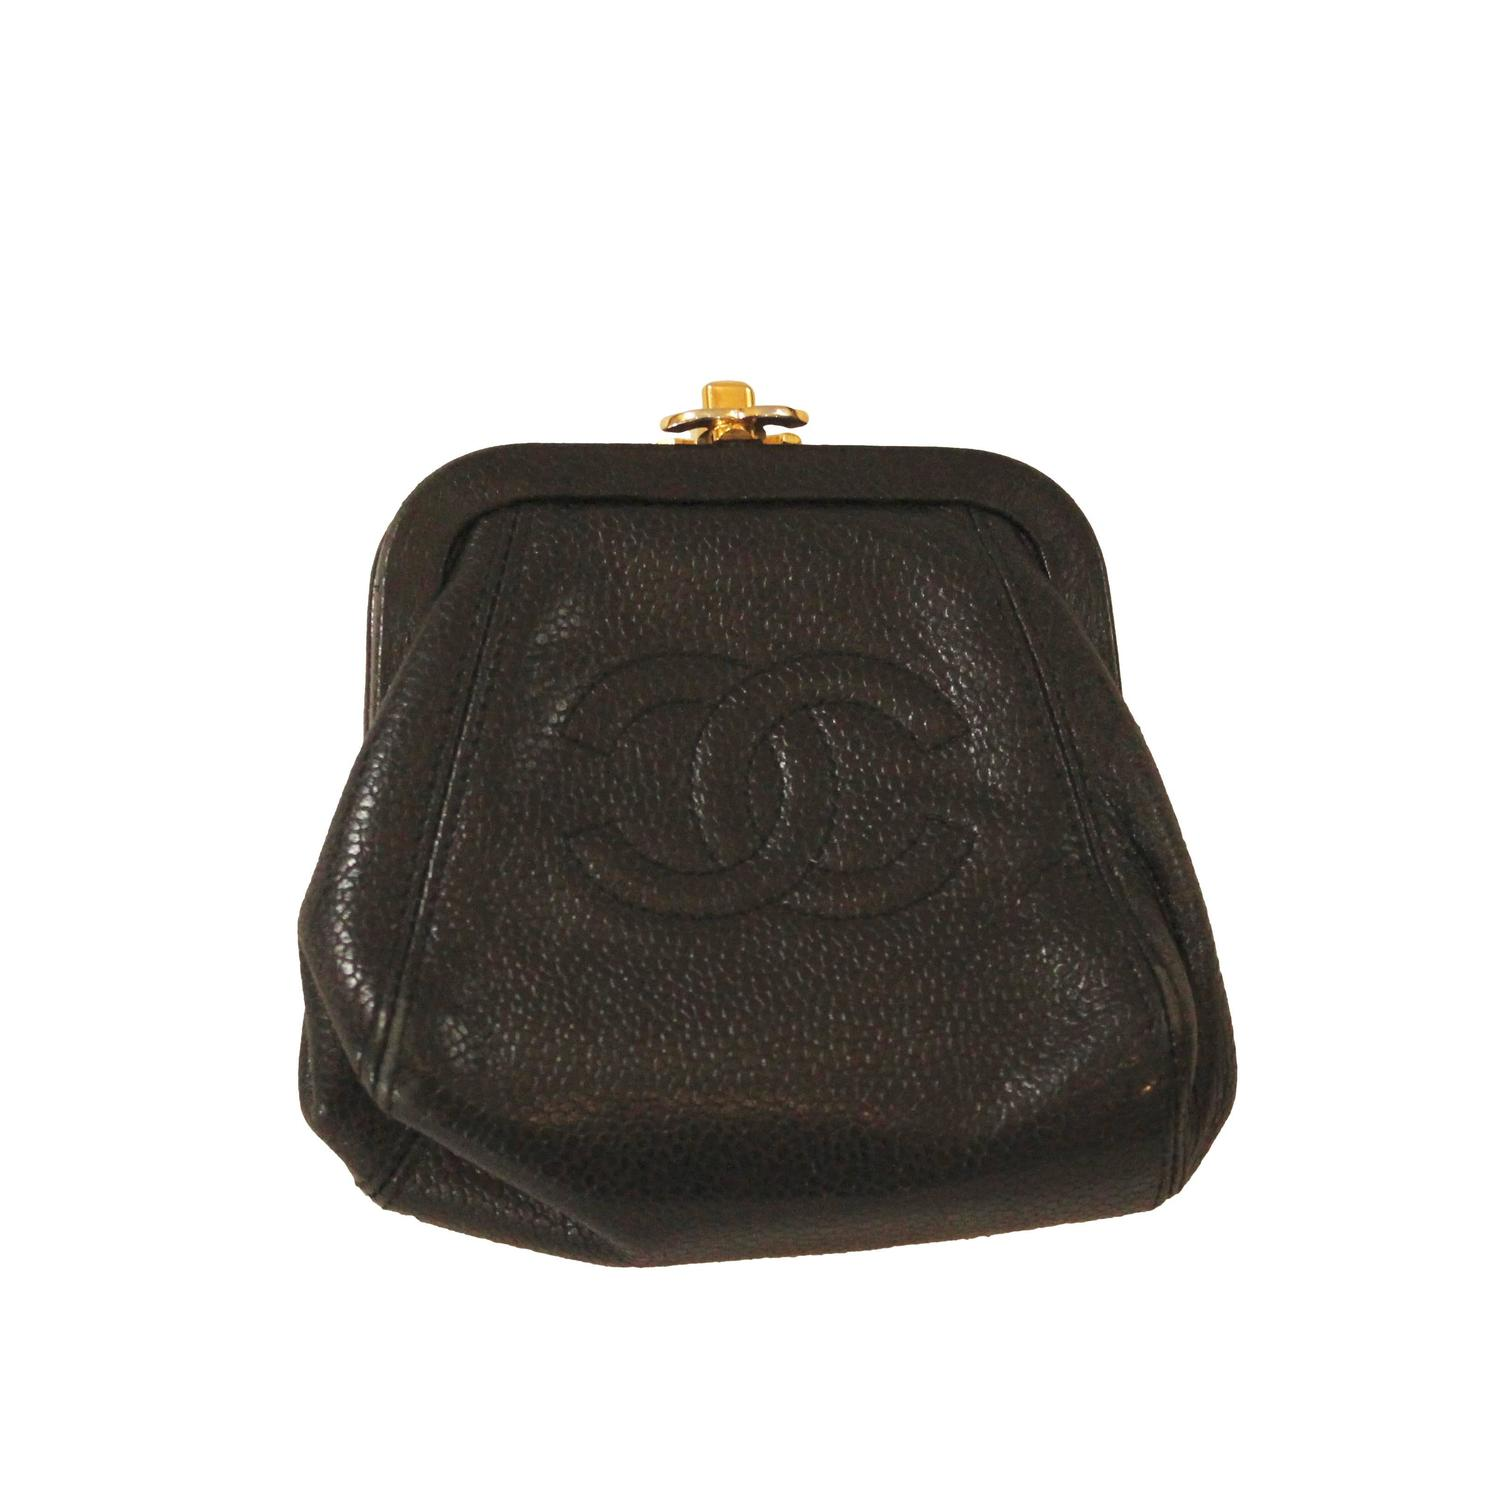 Chanel Black Leather Coin Purse at 1stdibs